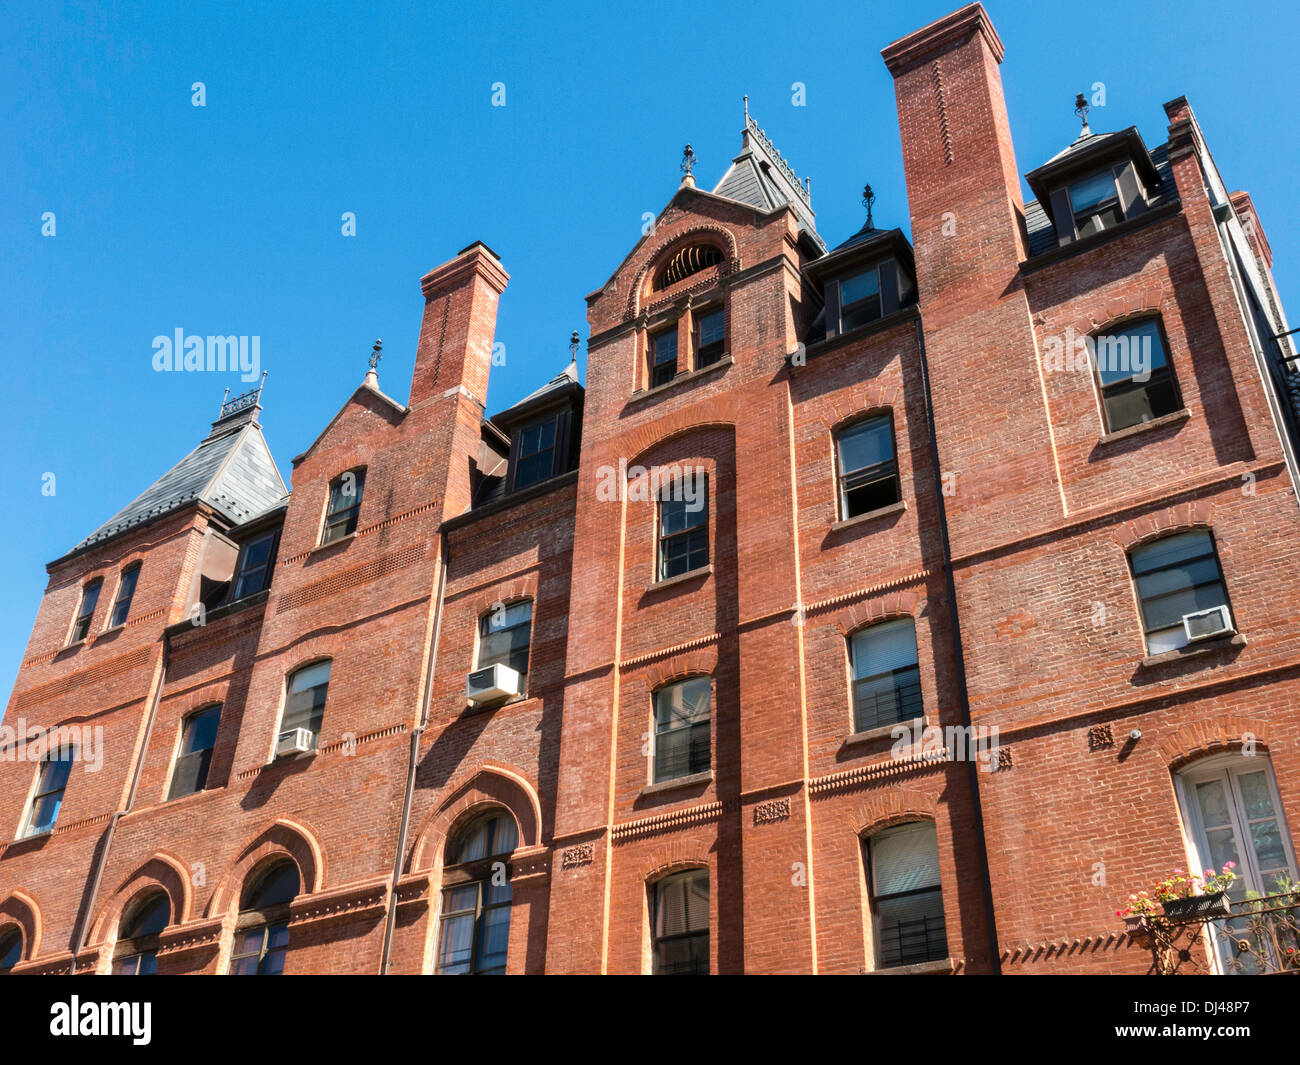 Talmud Torah Darchei Noam Day School, Lower East Side, NYC - Stock Image